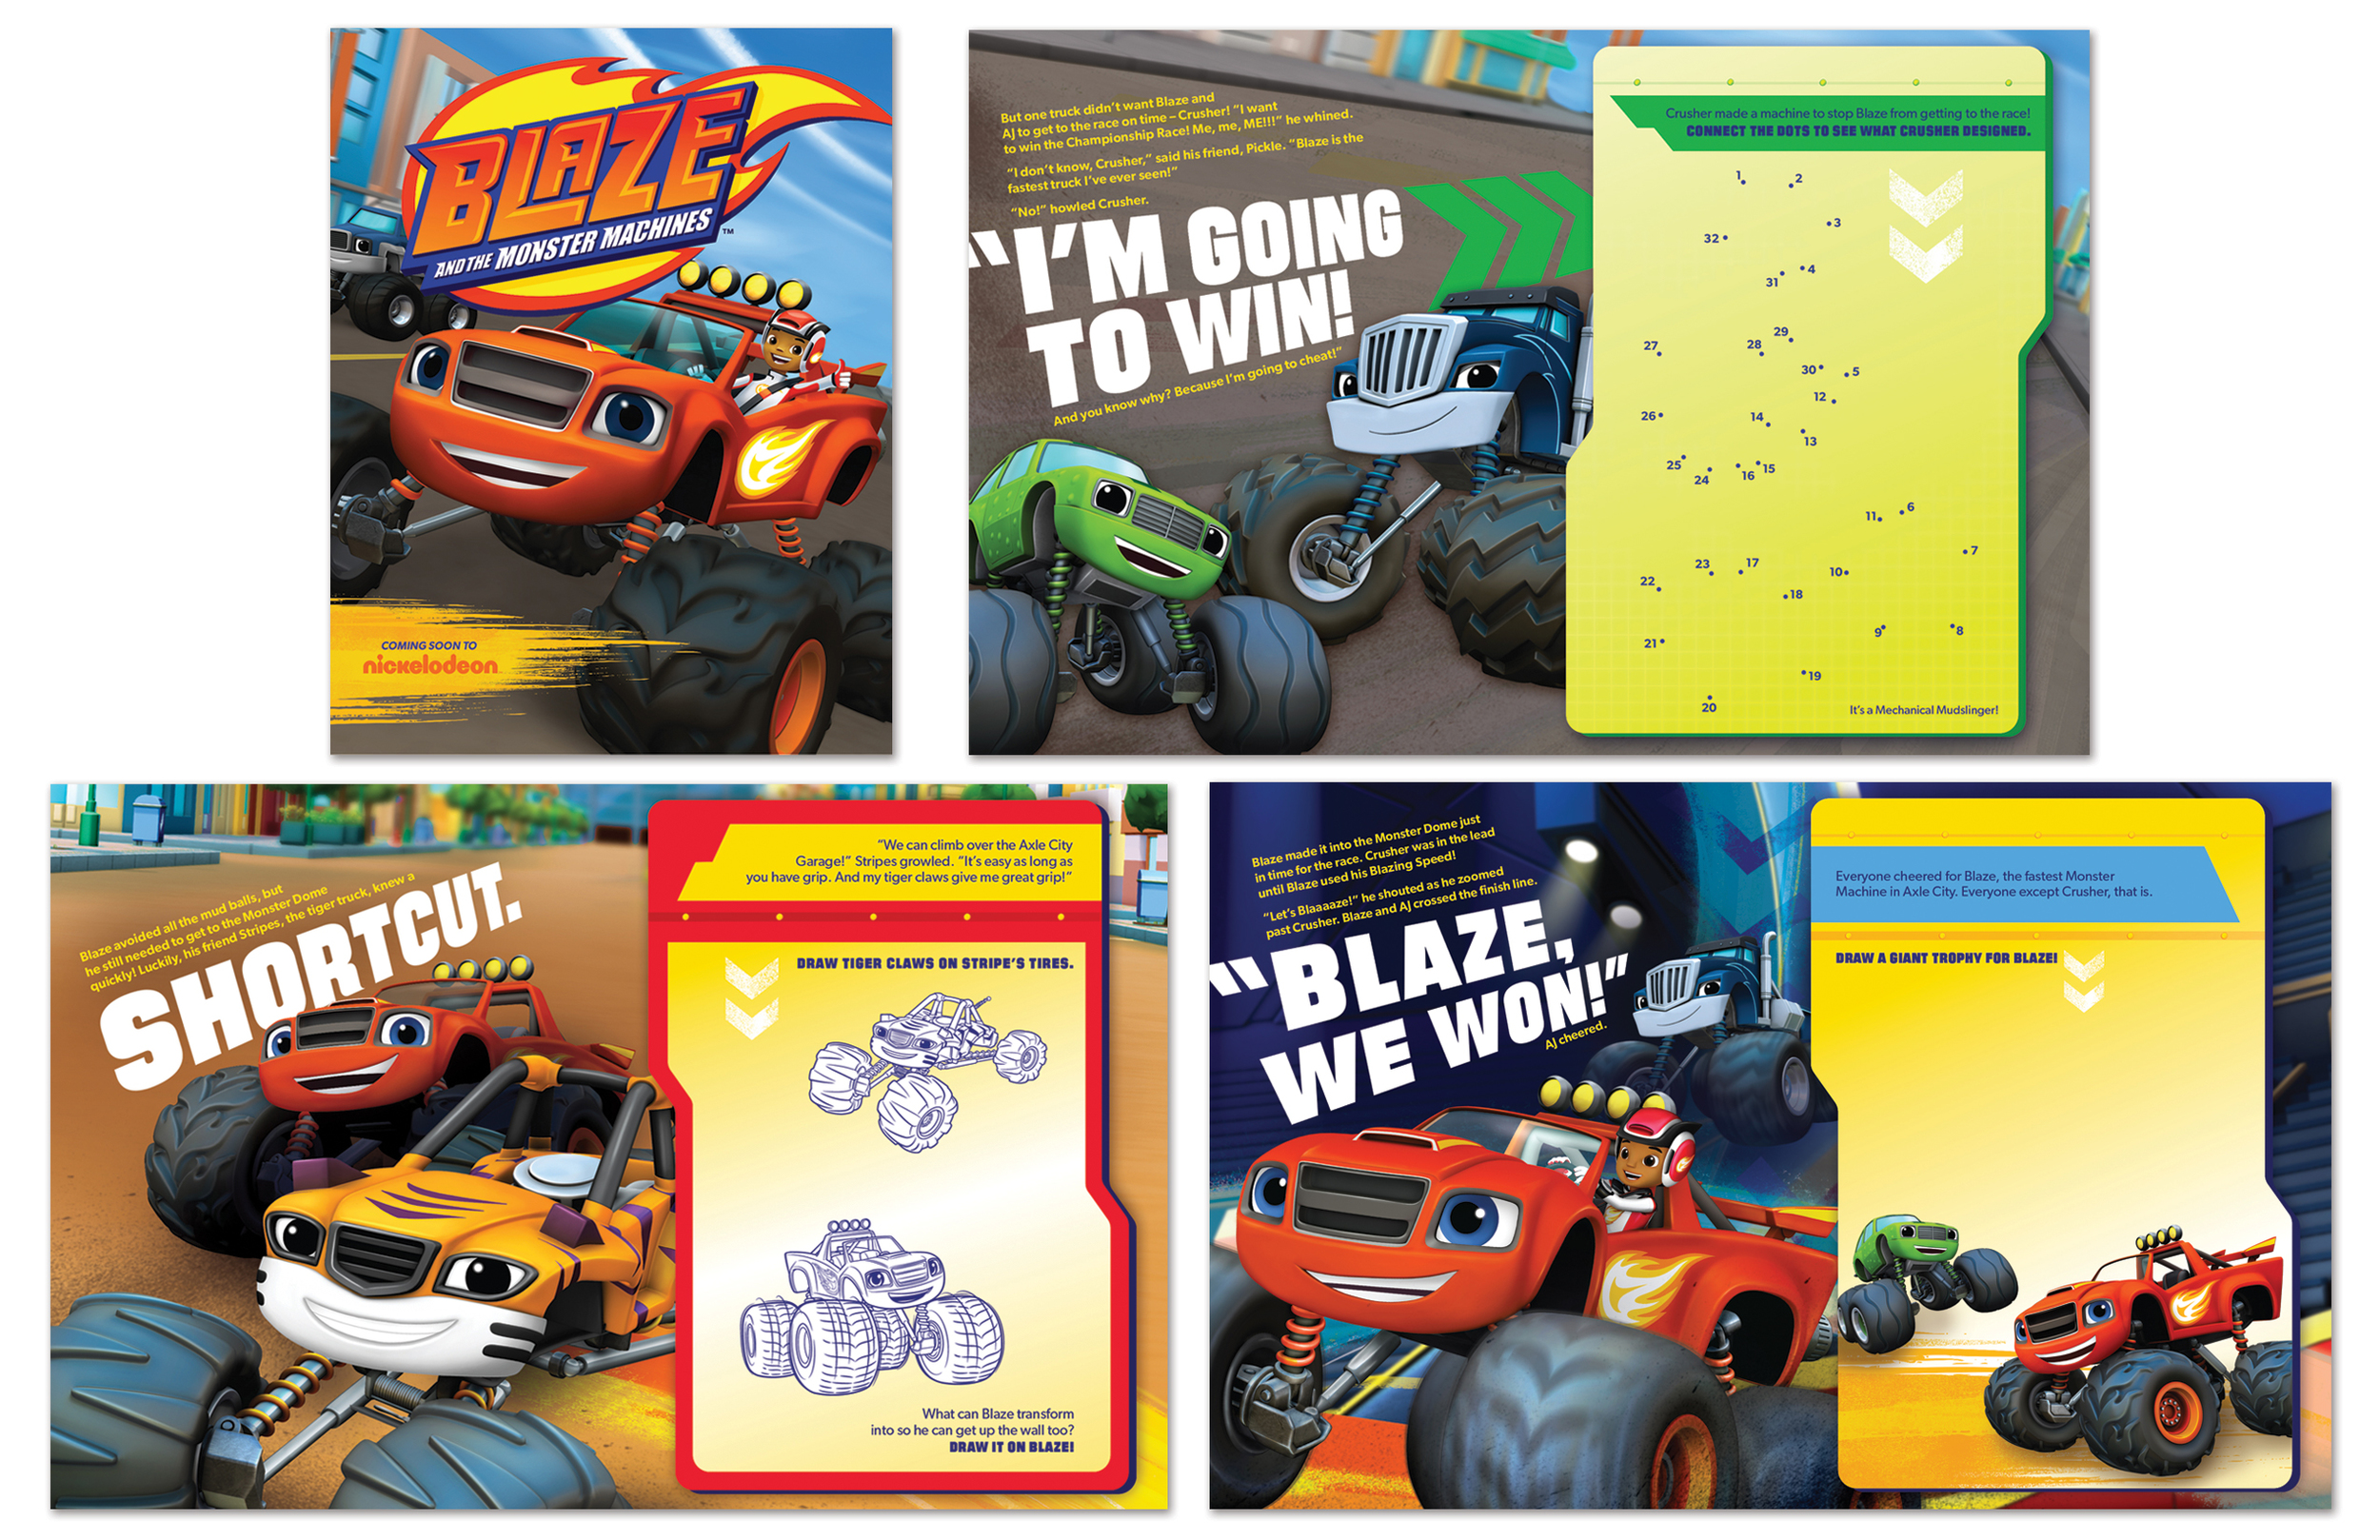 Blaze activity booklet